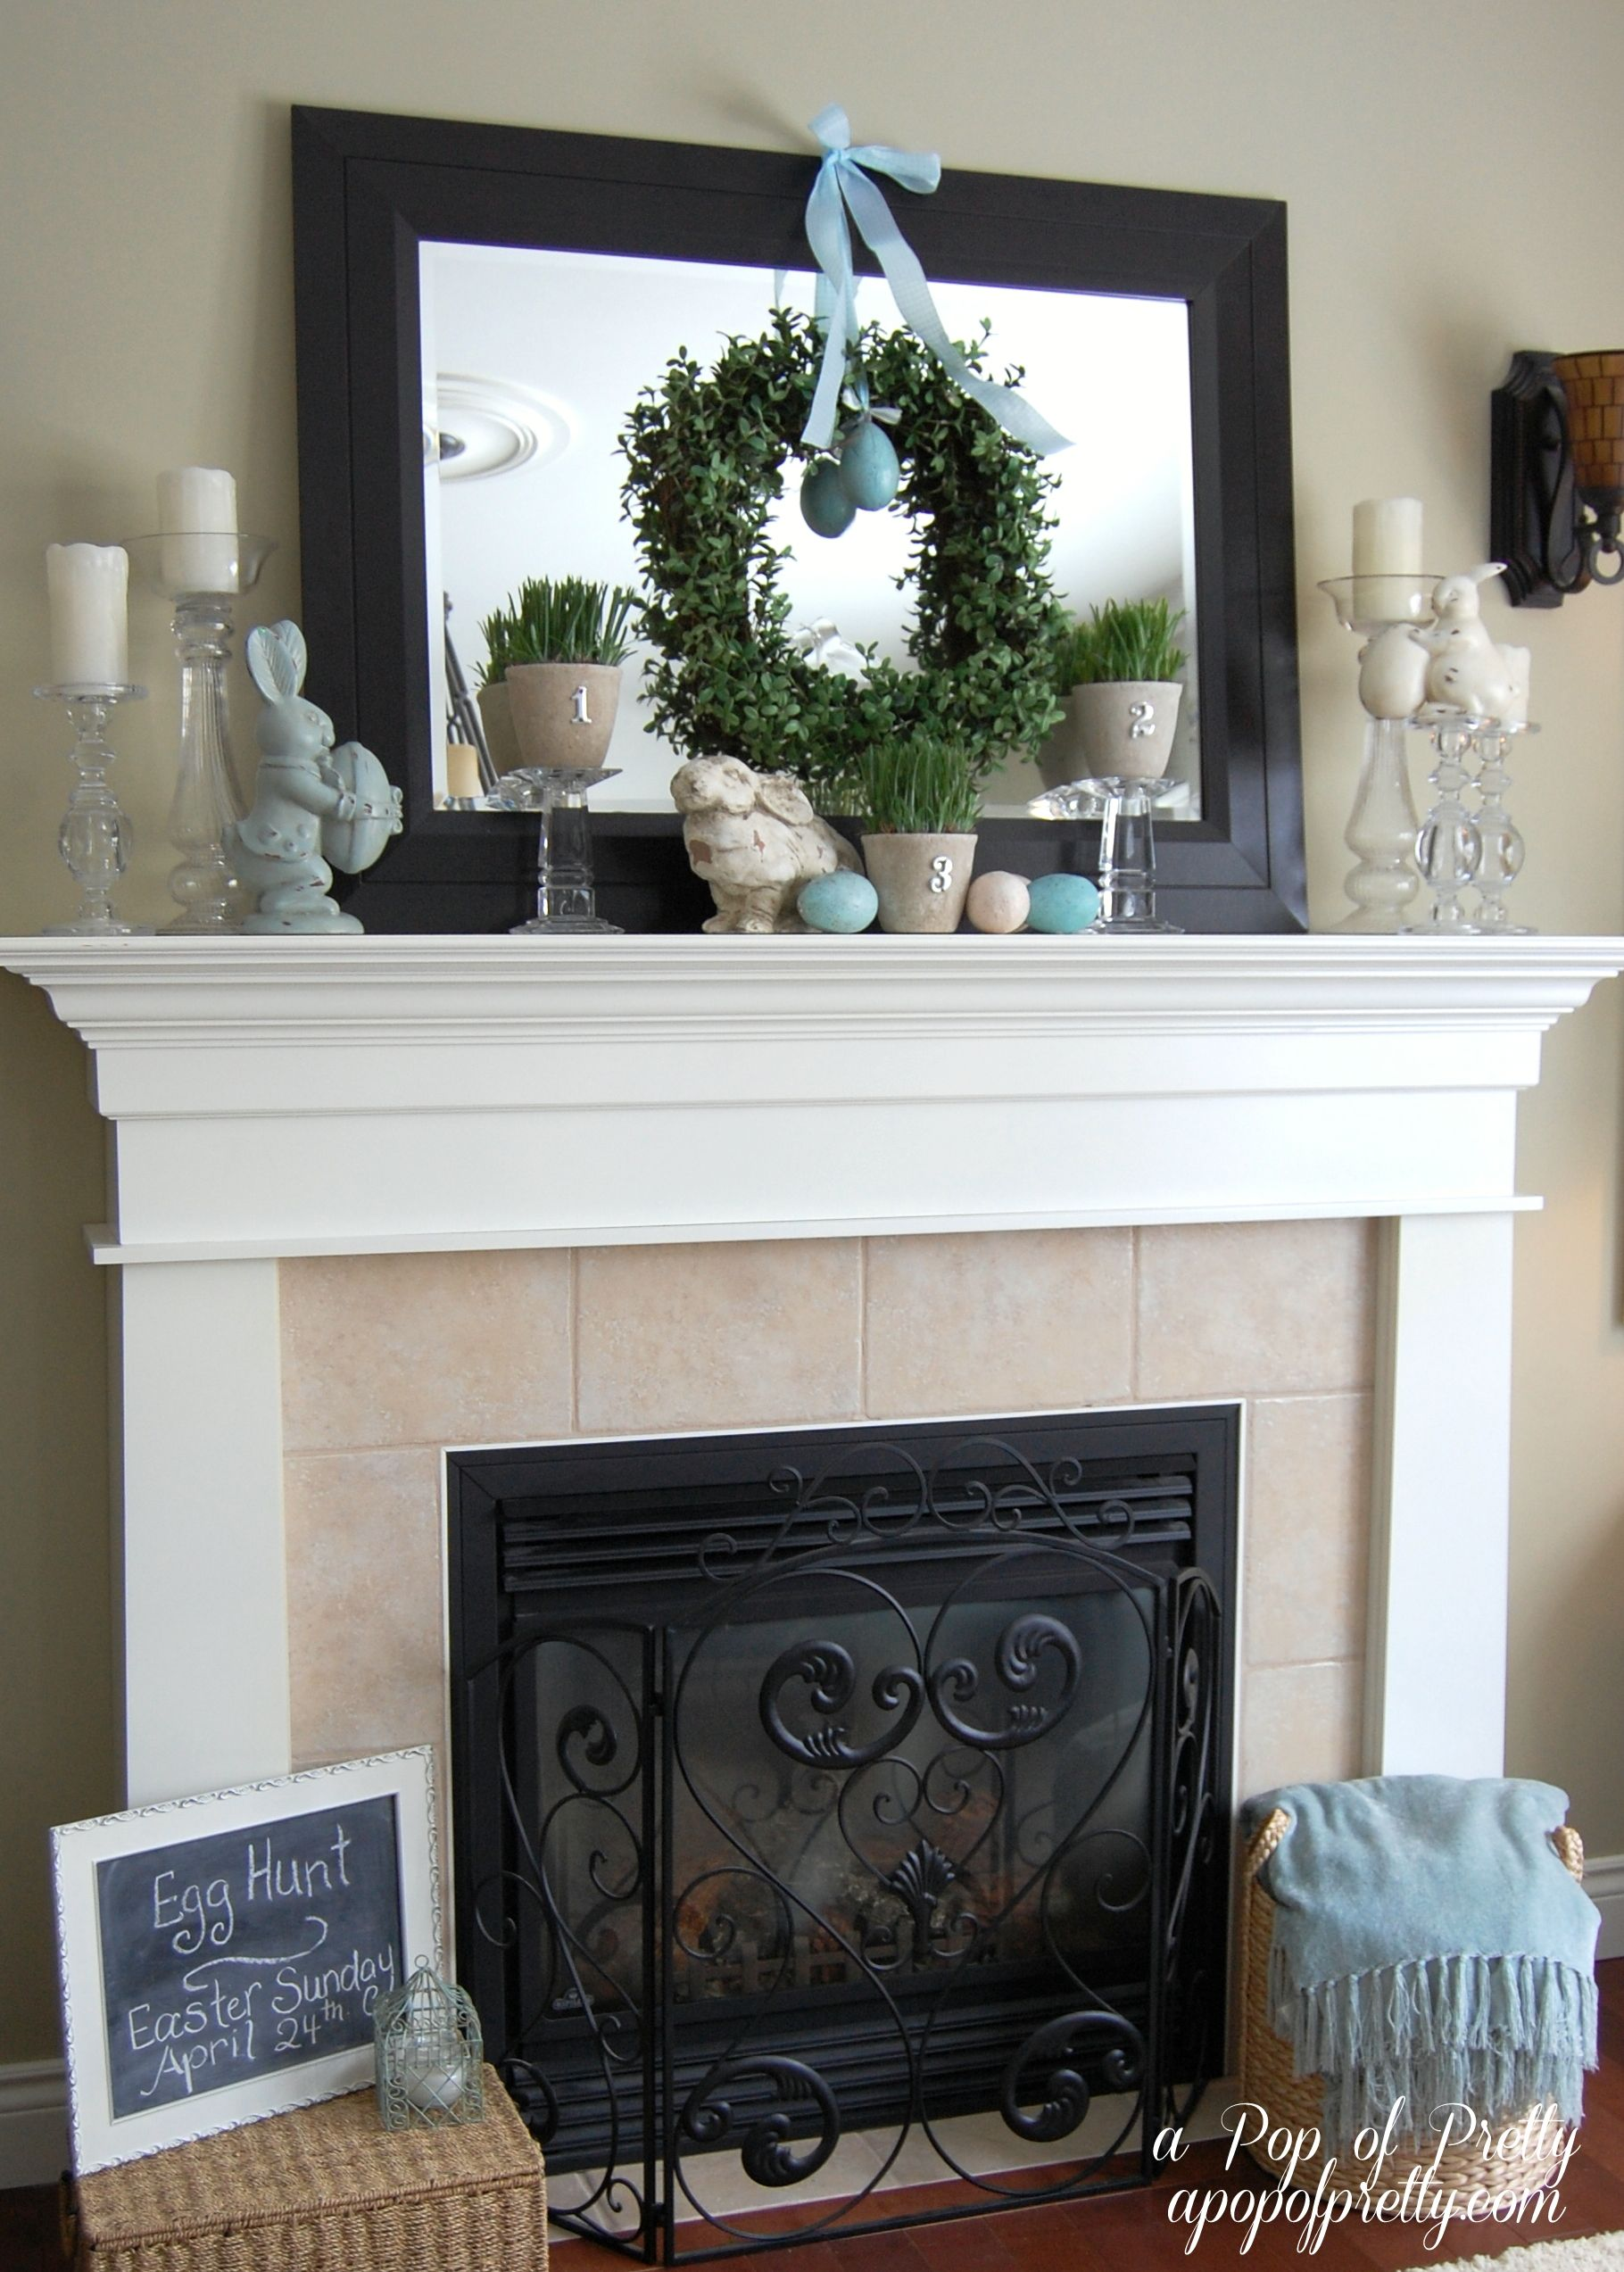 Easter Decorating Ideas - Mantel 2011 in 2019 | Fireplace ...